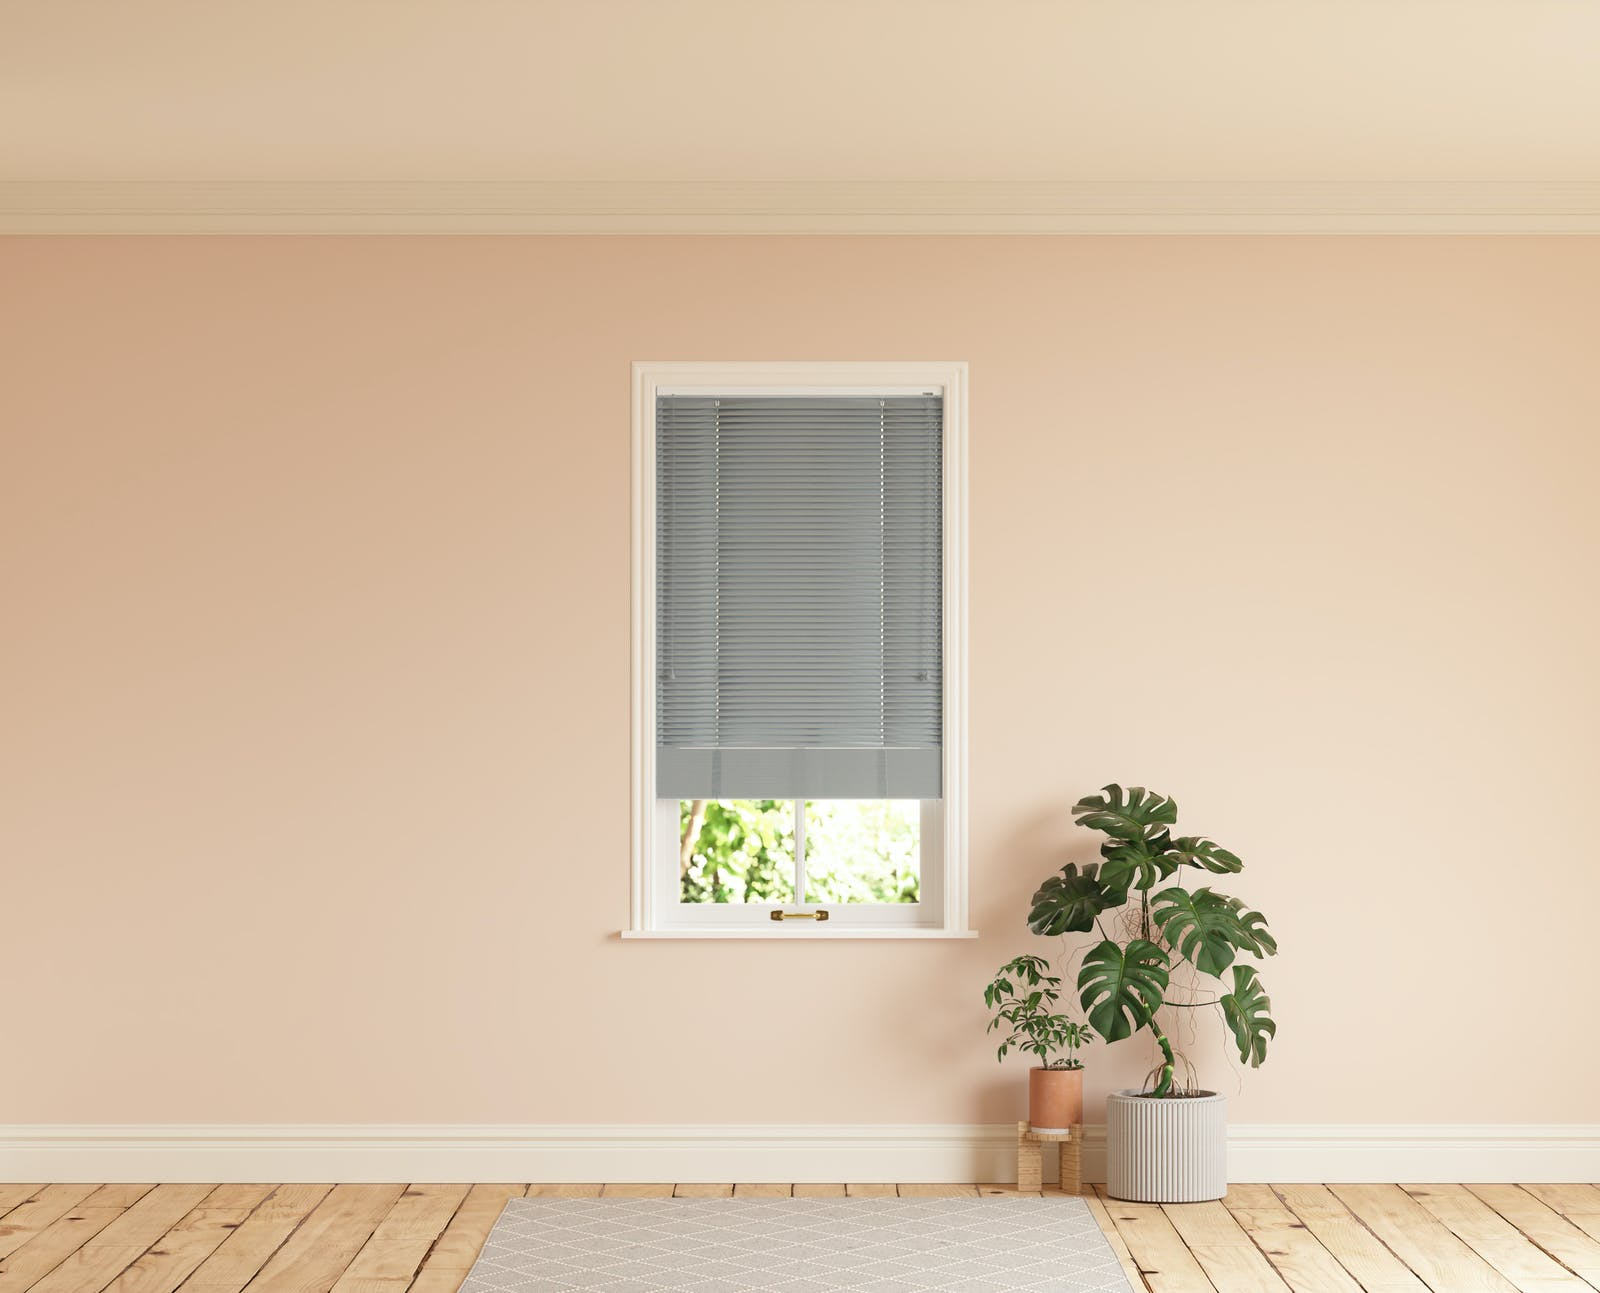 Room with walls painted in Lick Pink 02 and Grey 06 Venetian fine grain blinds